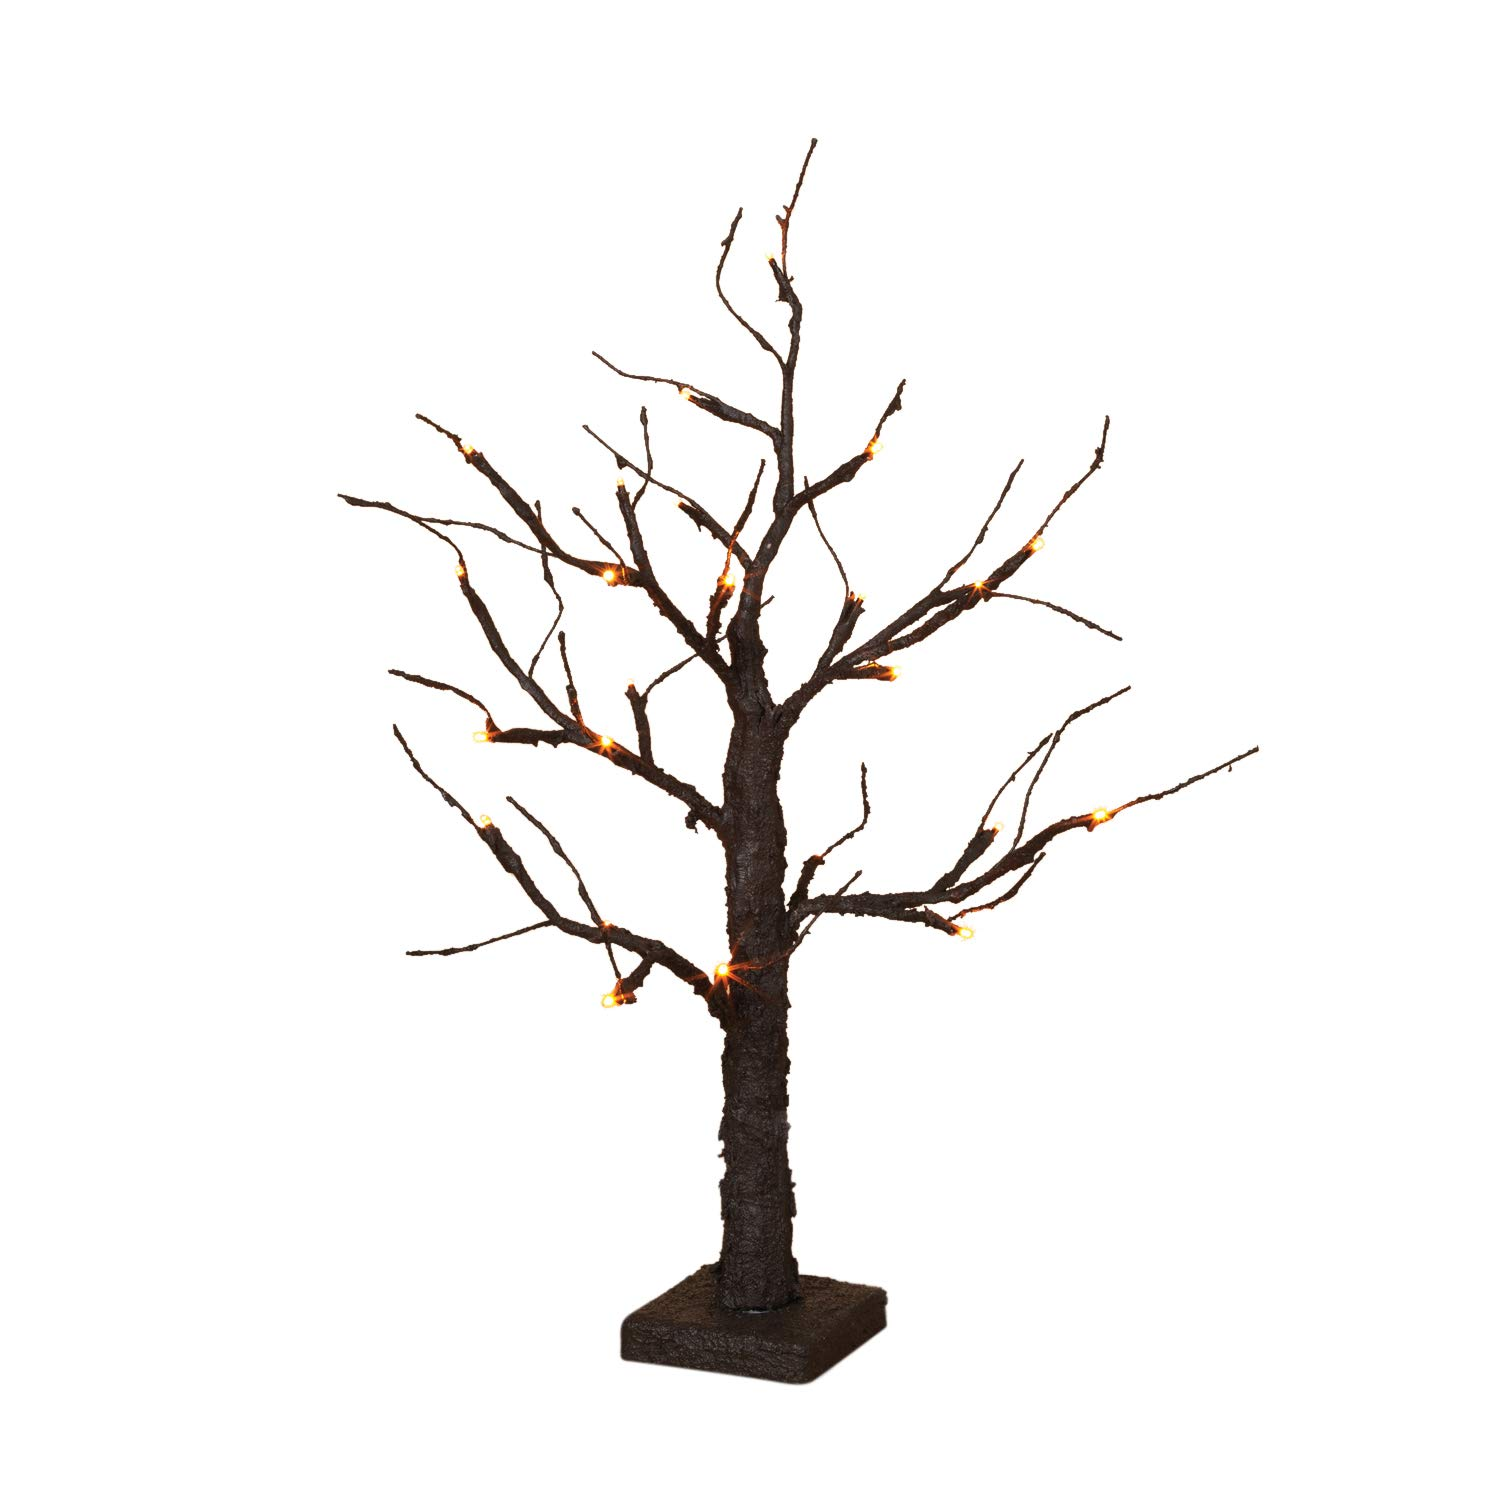 Spooky Halloween Tree 24'' Table Top LED Battery Op Figurine New in Box